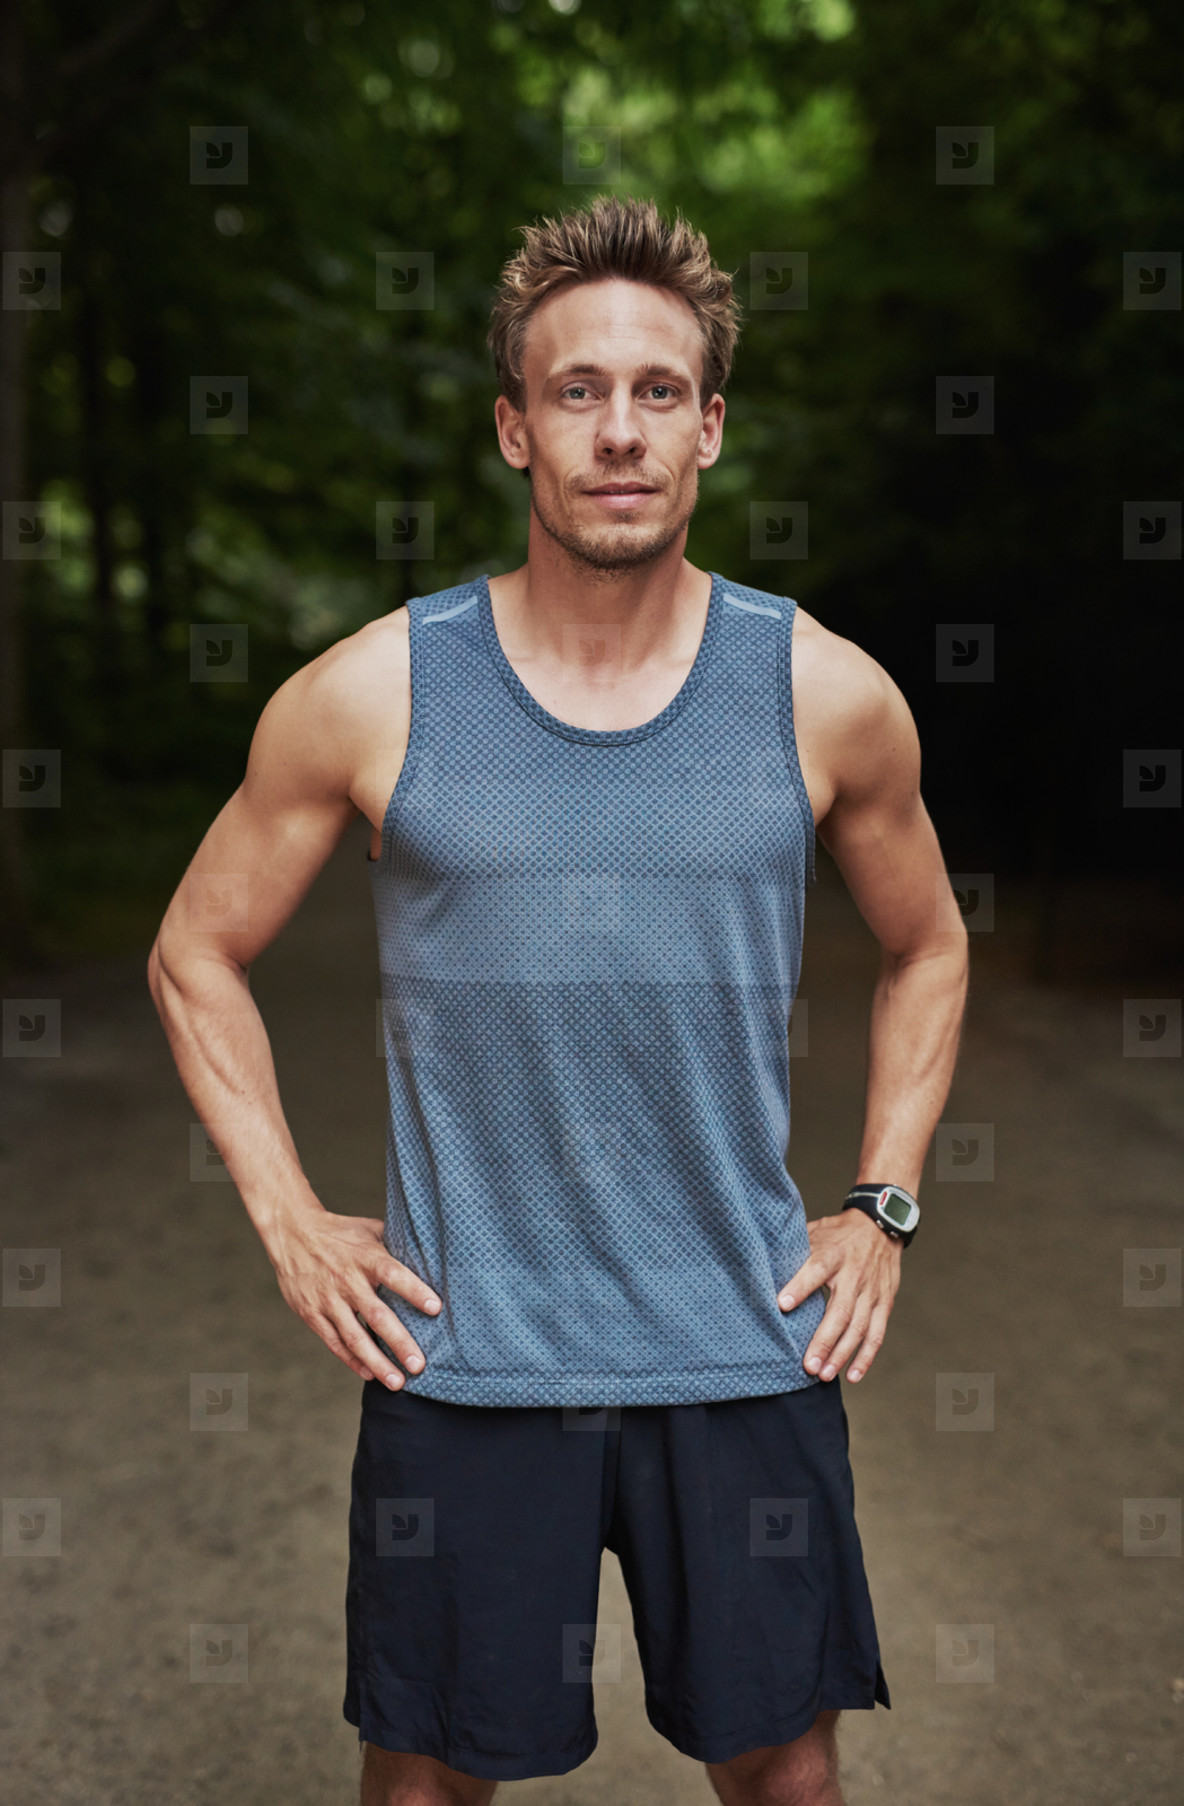 Athletic muscular man in sportswear